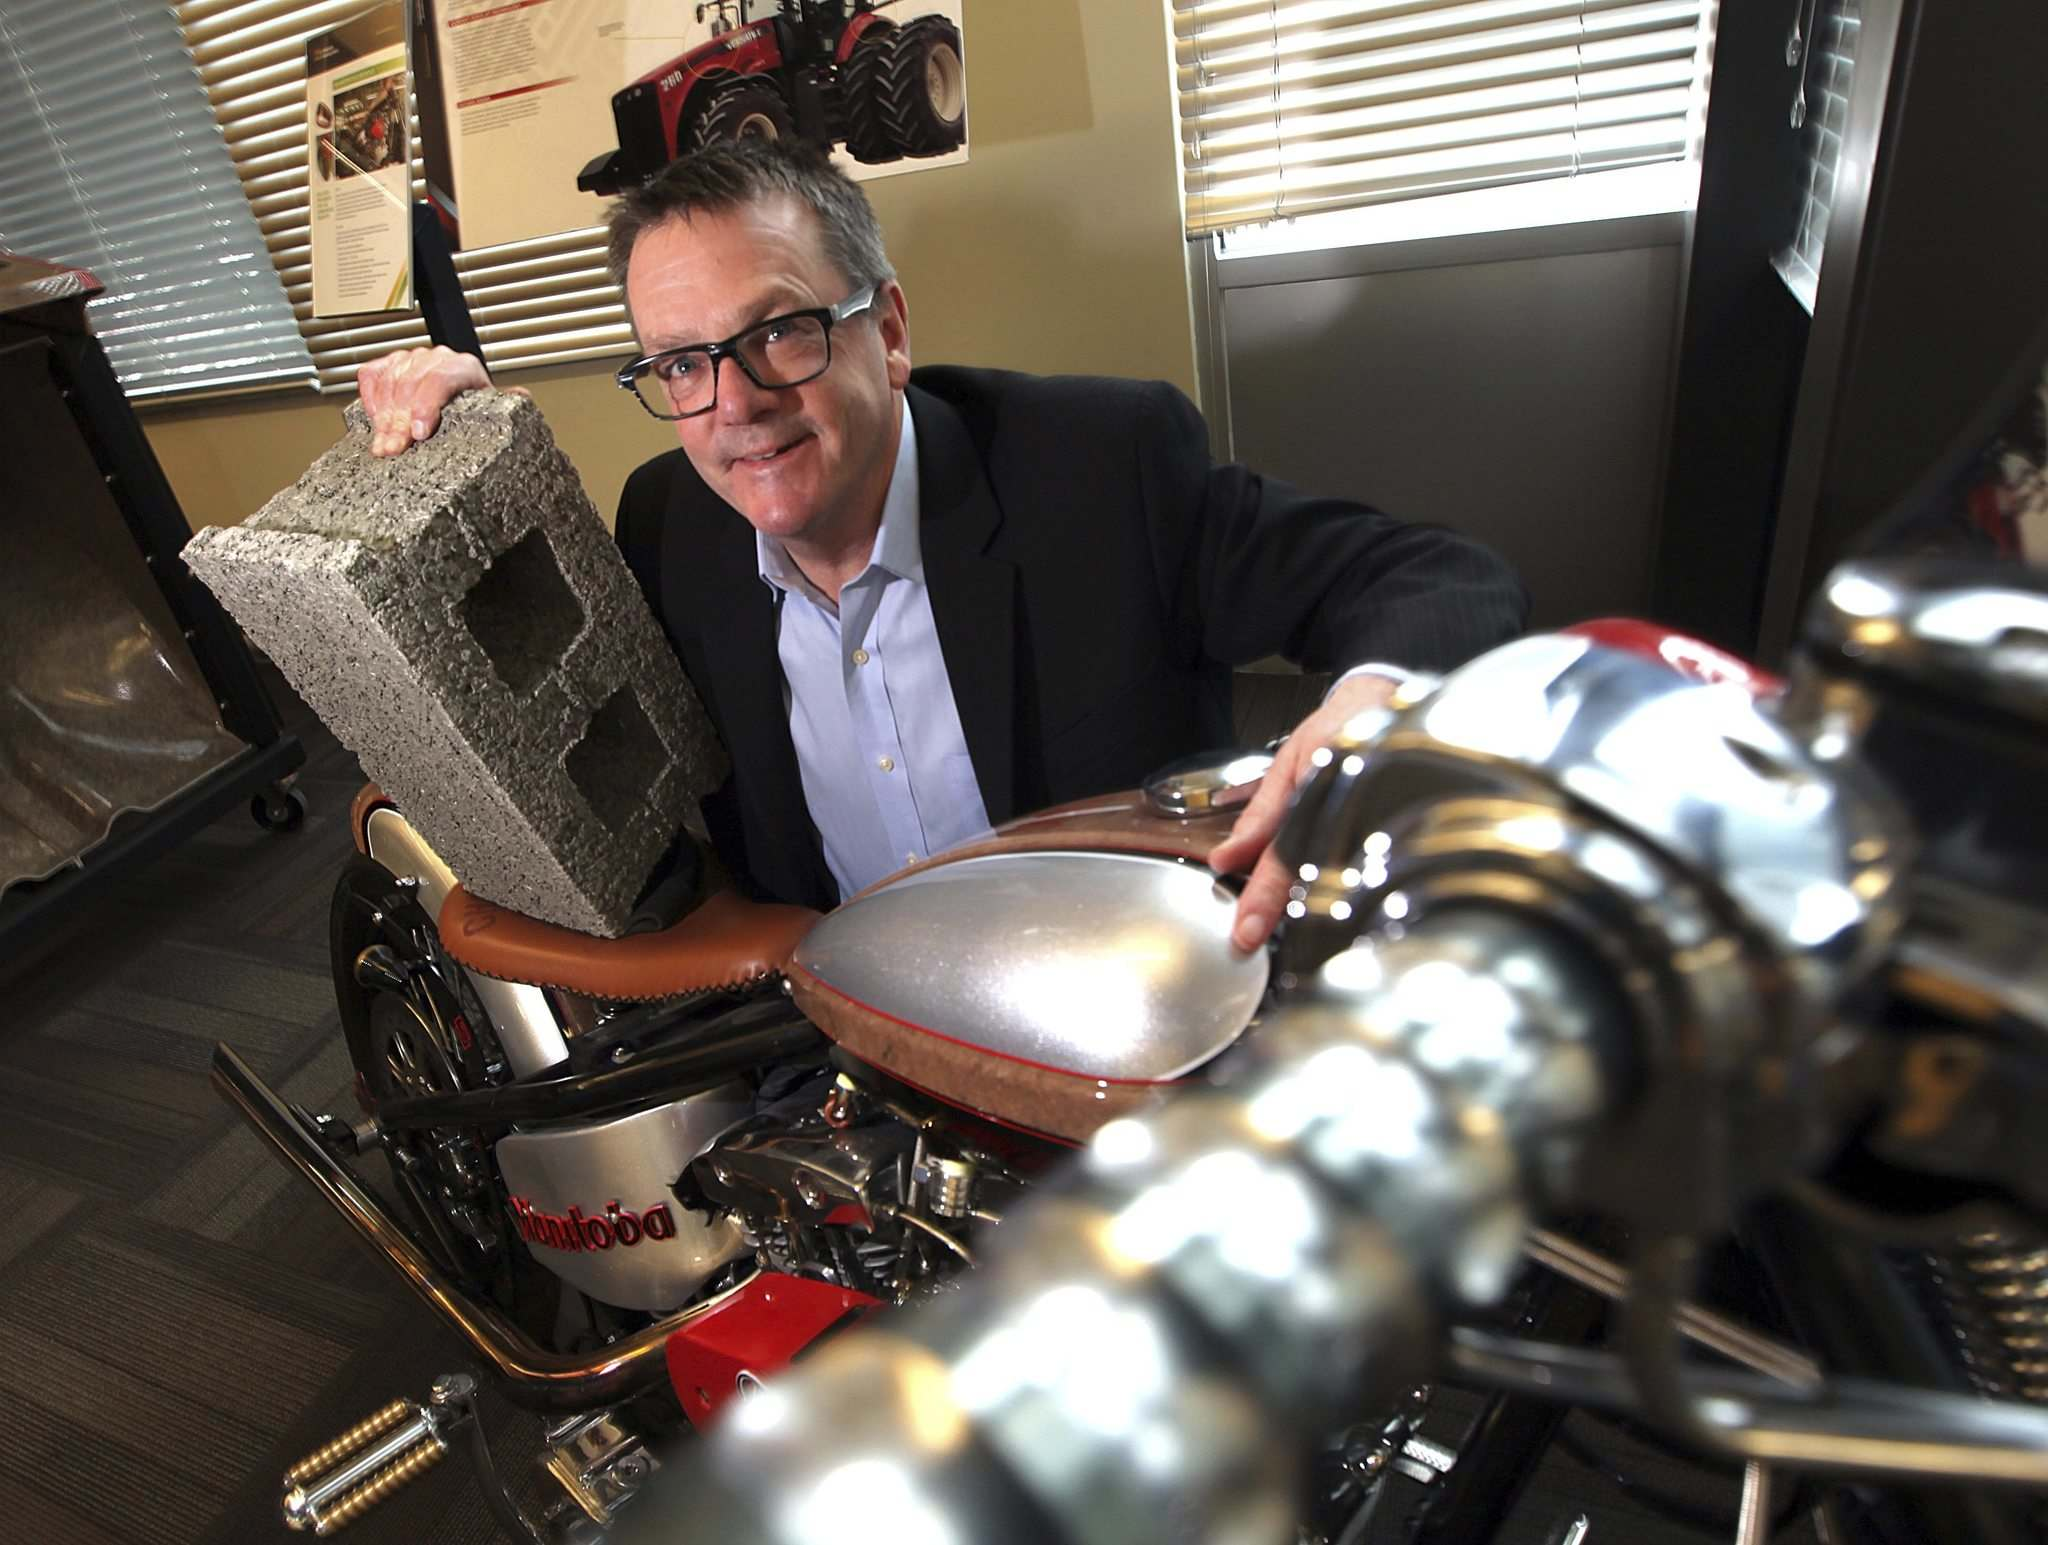 PHIL HOSSACK / WINNIPEG FREE PRESS</p><p>Composites Innovation Centre president and CEO Sean McKay crouches by innovative new products. The centre is part of Winnipeg&#39;s advanced manufacturing ecosystem.</p>